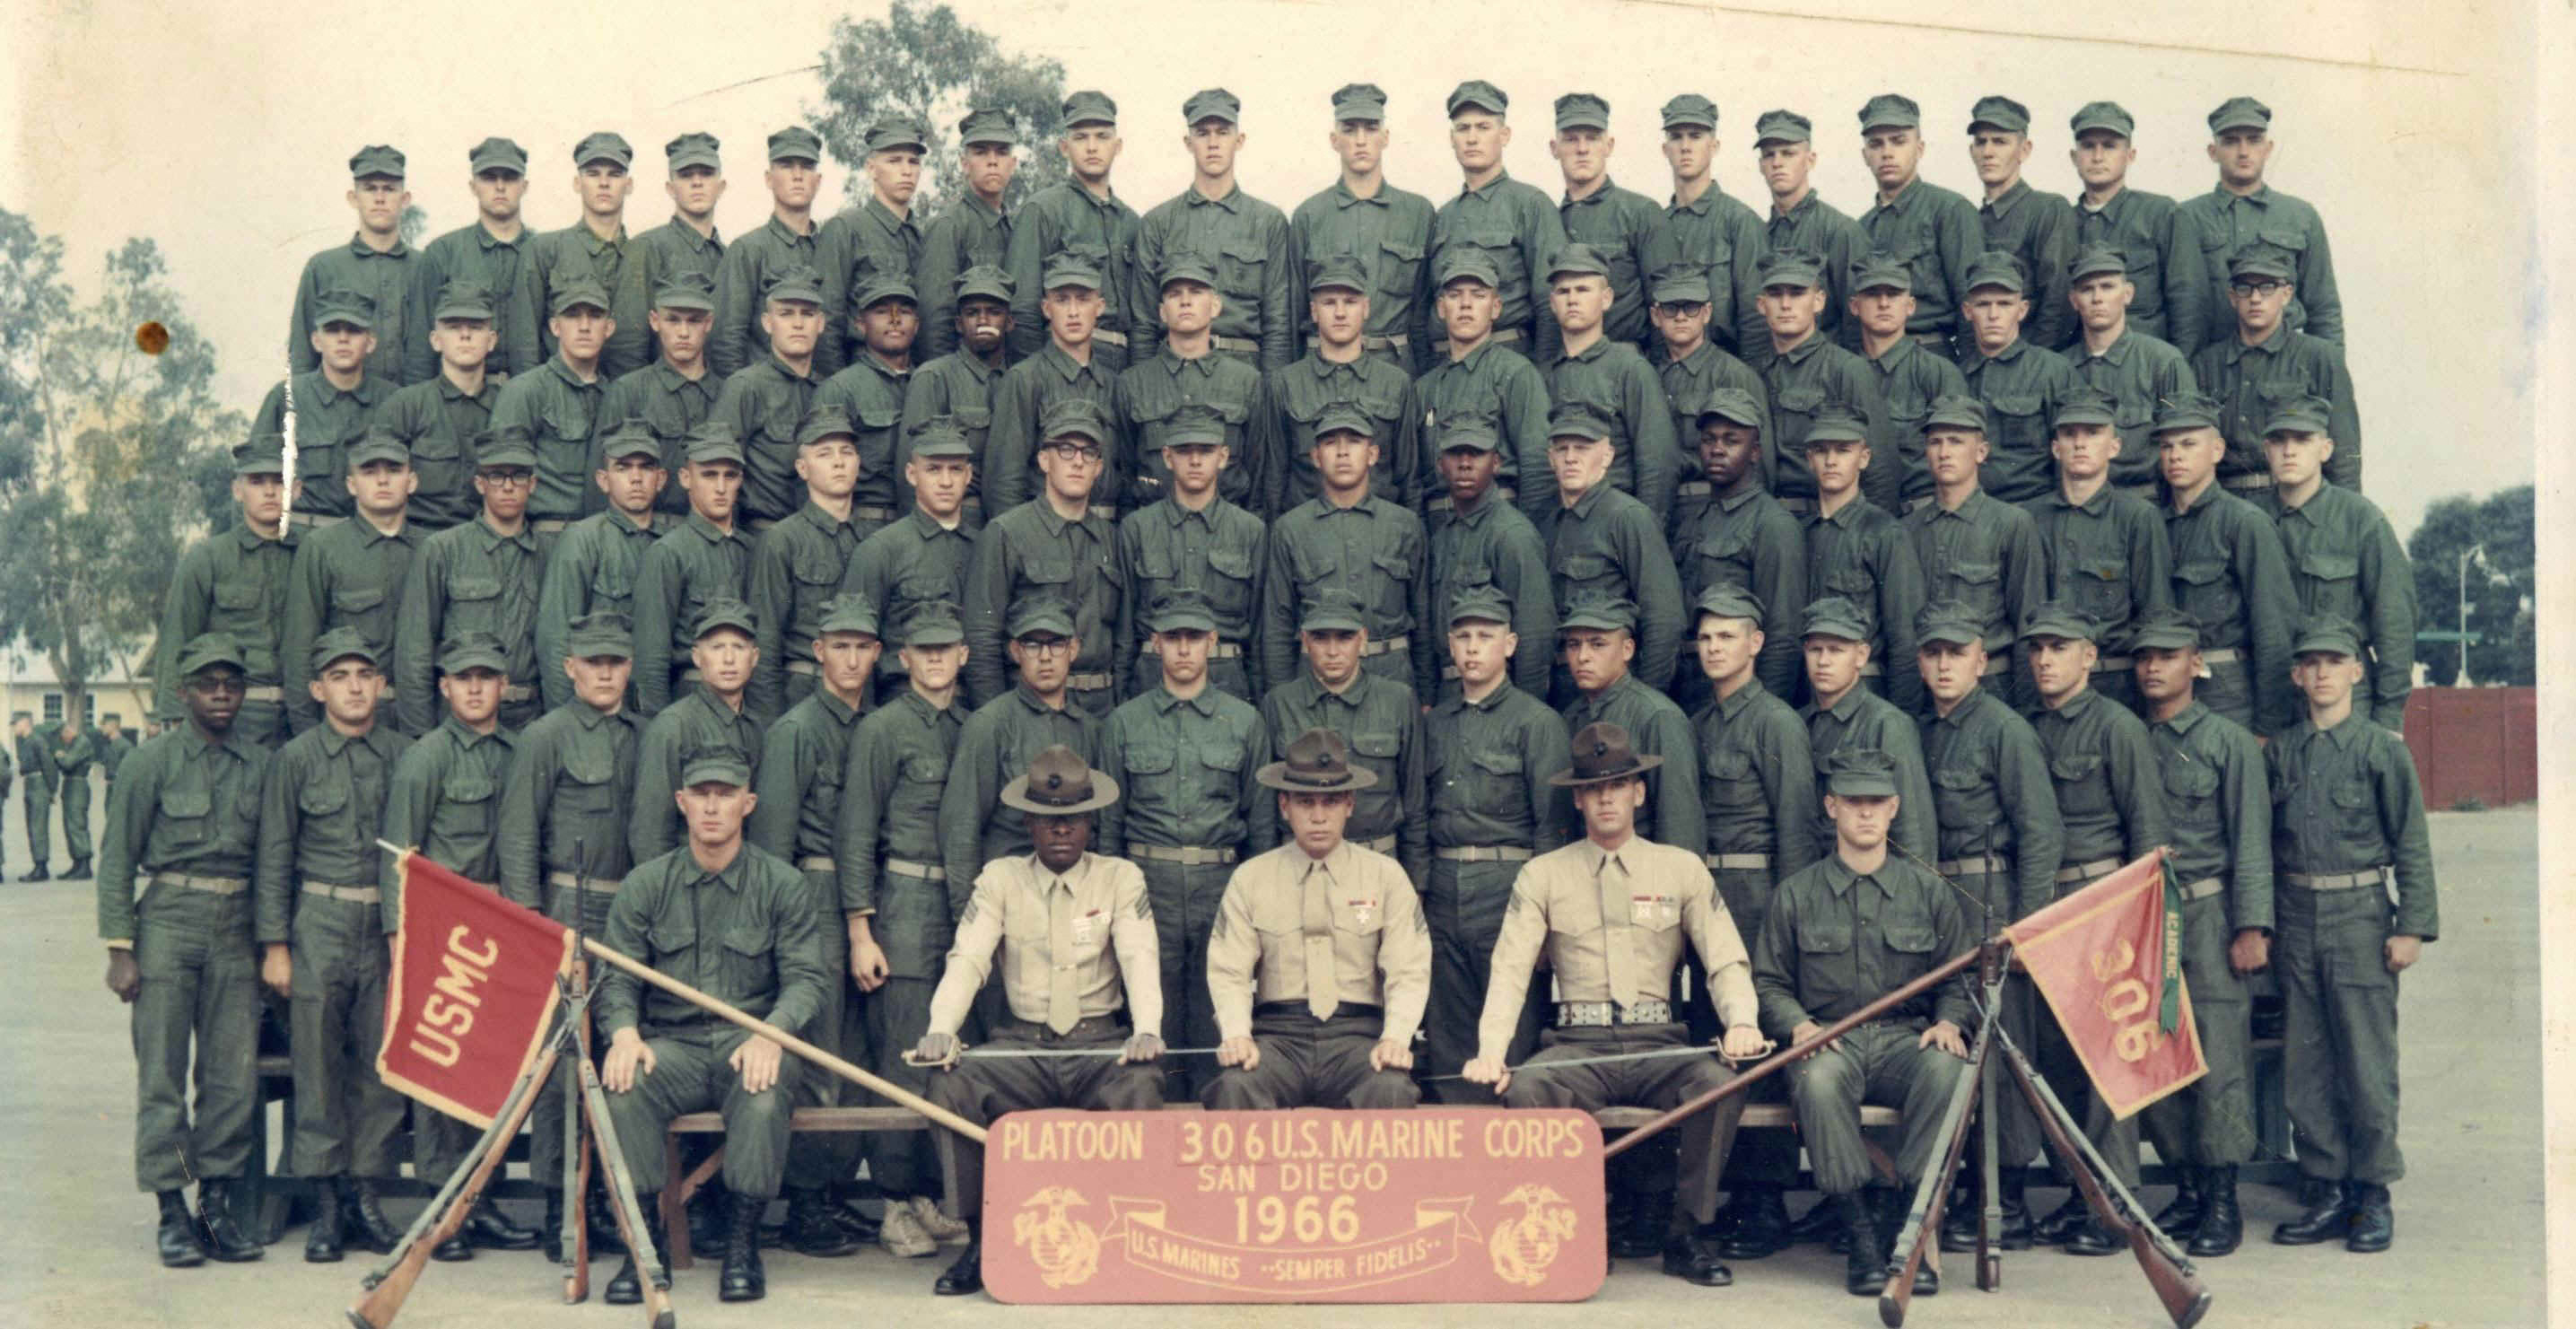 One of Lee's Platoon's, Platoon 306 - 1966